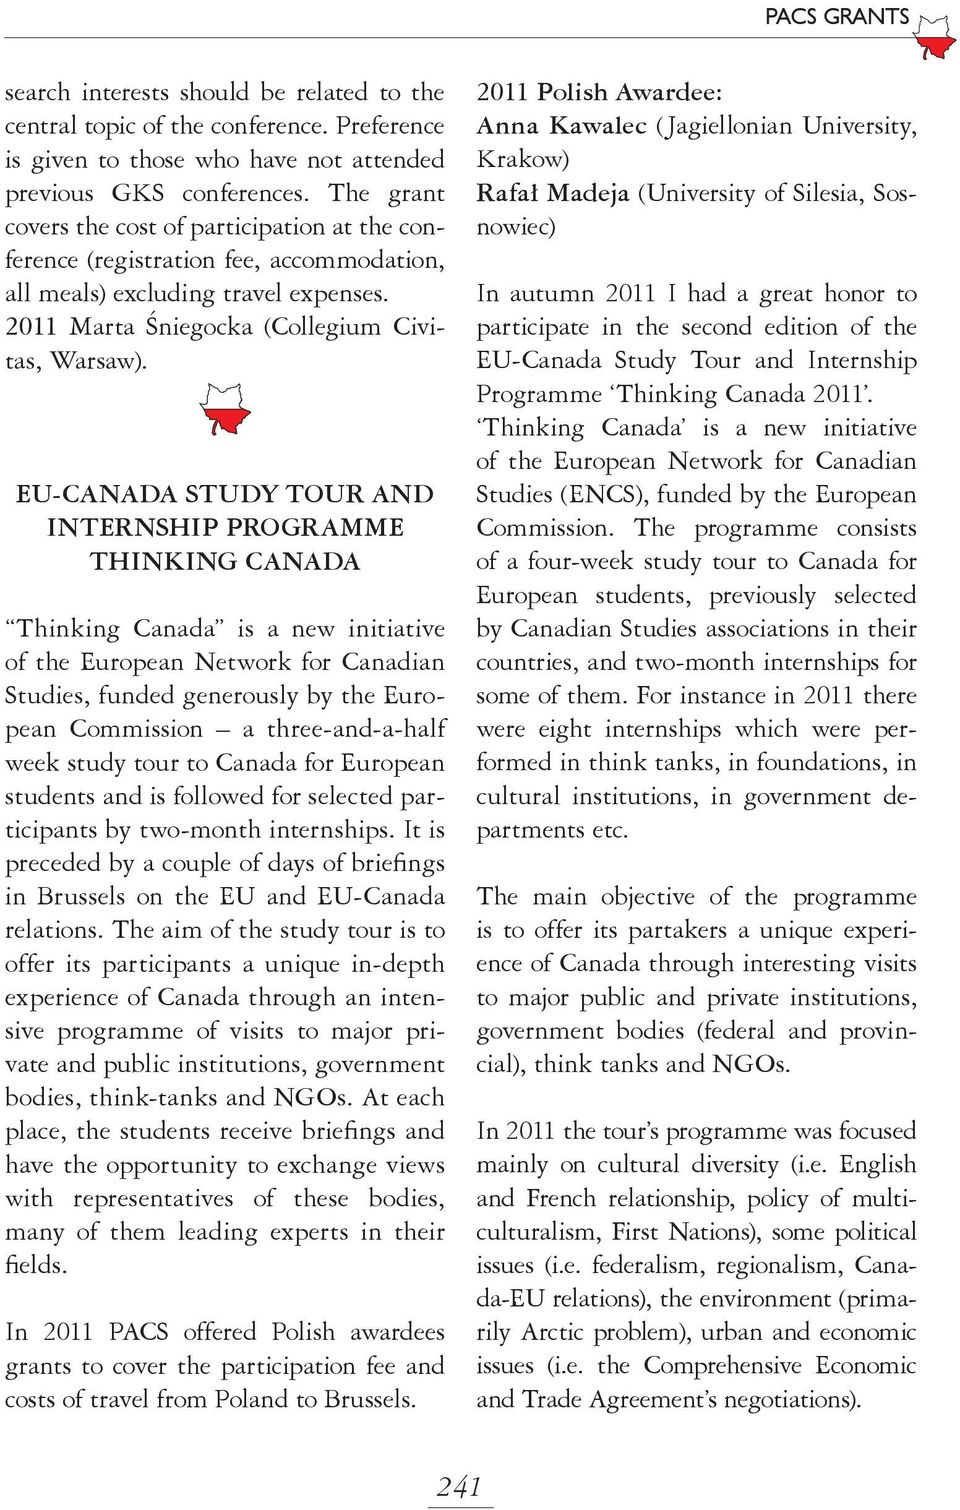 EU-CANADA STUDY TOUR AND INTERNSHIP PROGRAMME THINKING CANADA Thinking Canada is a new initiative of the European Network for Canadian Studies, funded generously by the European Commission a